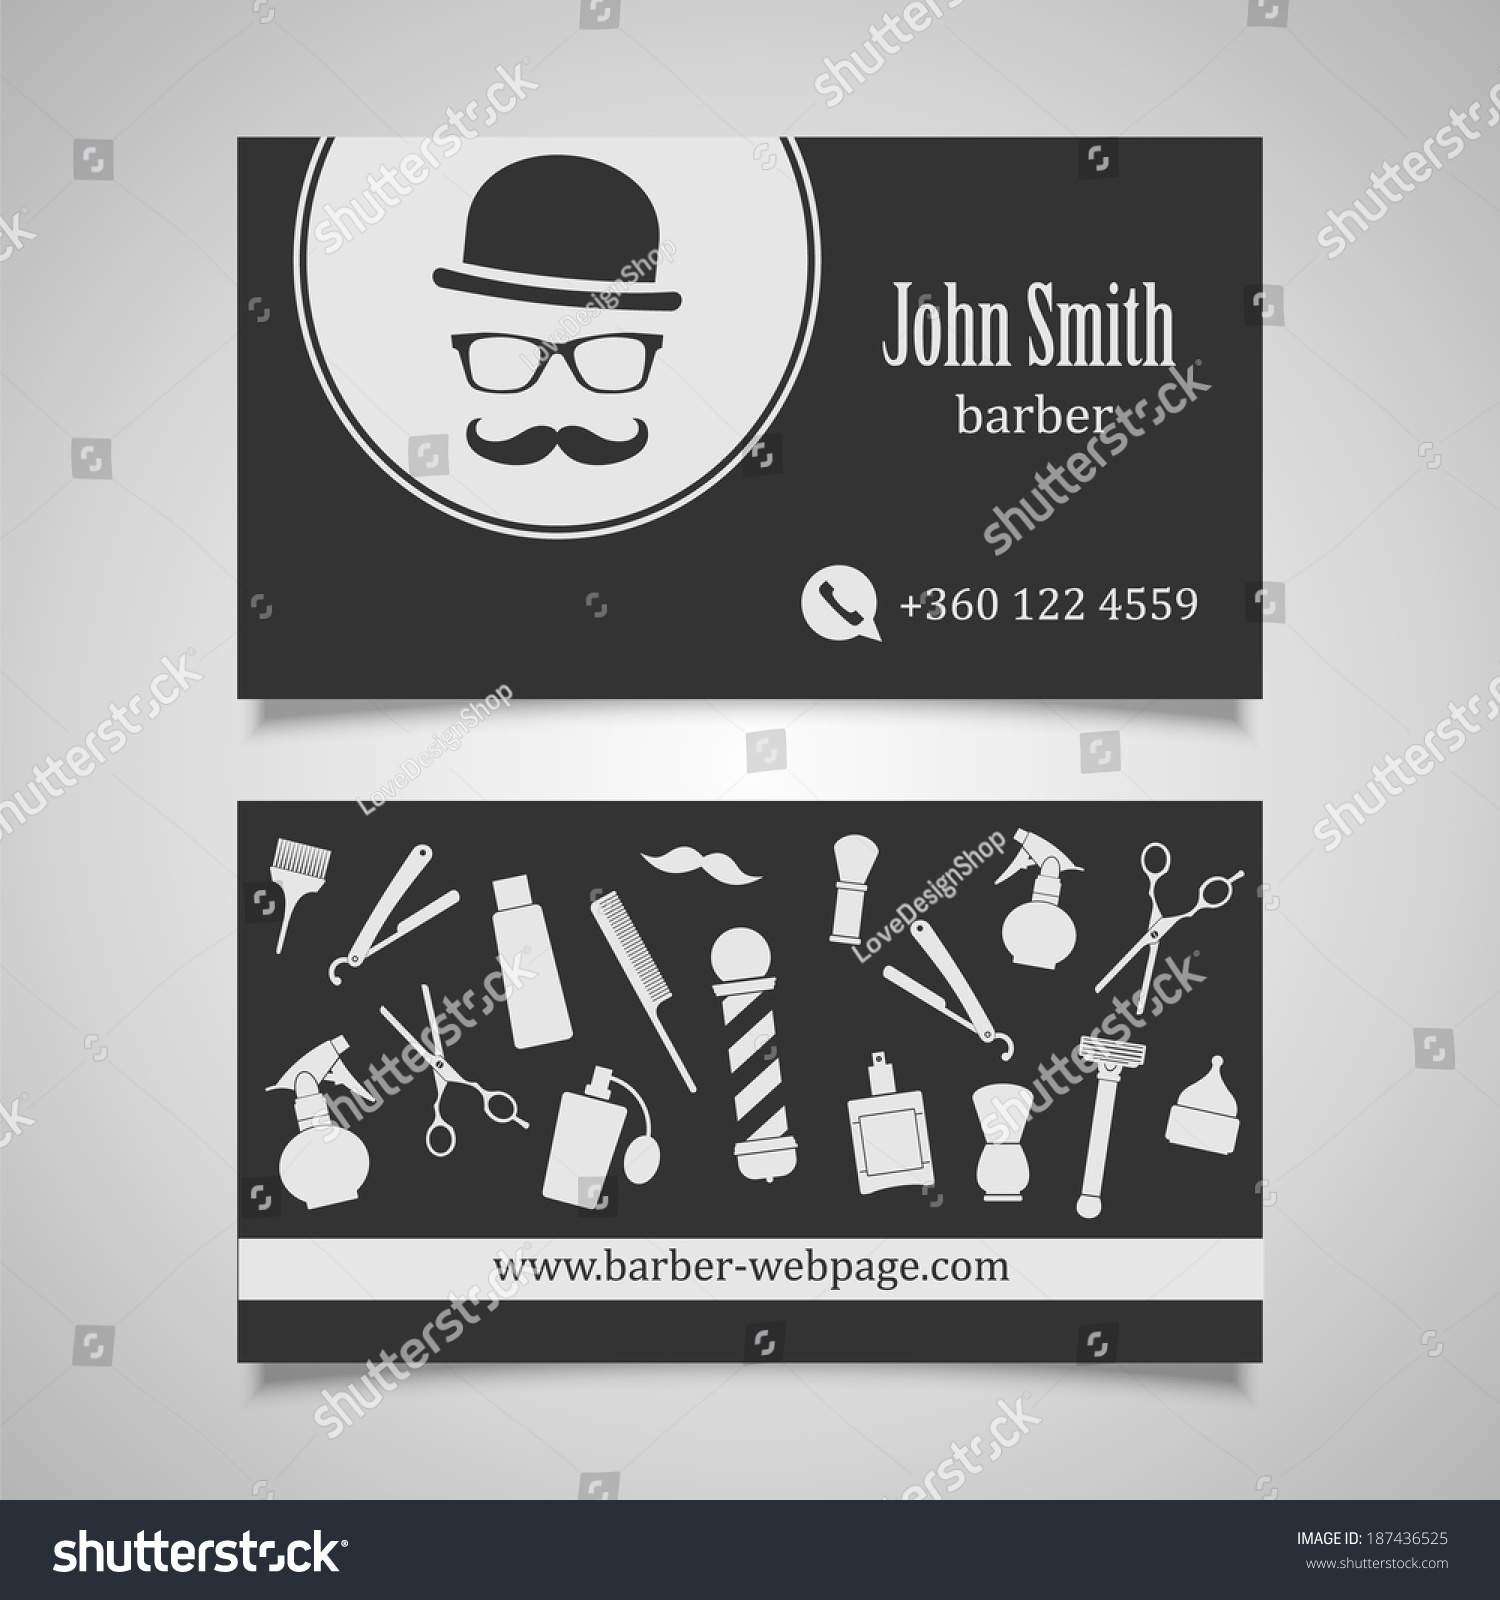 Royalty free hair salon barber business card design 187436525 hair salon barber business card design template 187436525 cheaphphosting Images